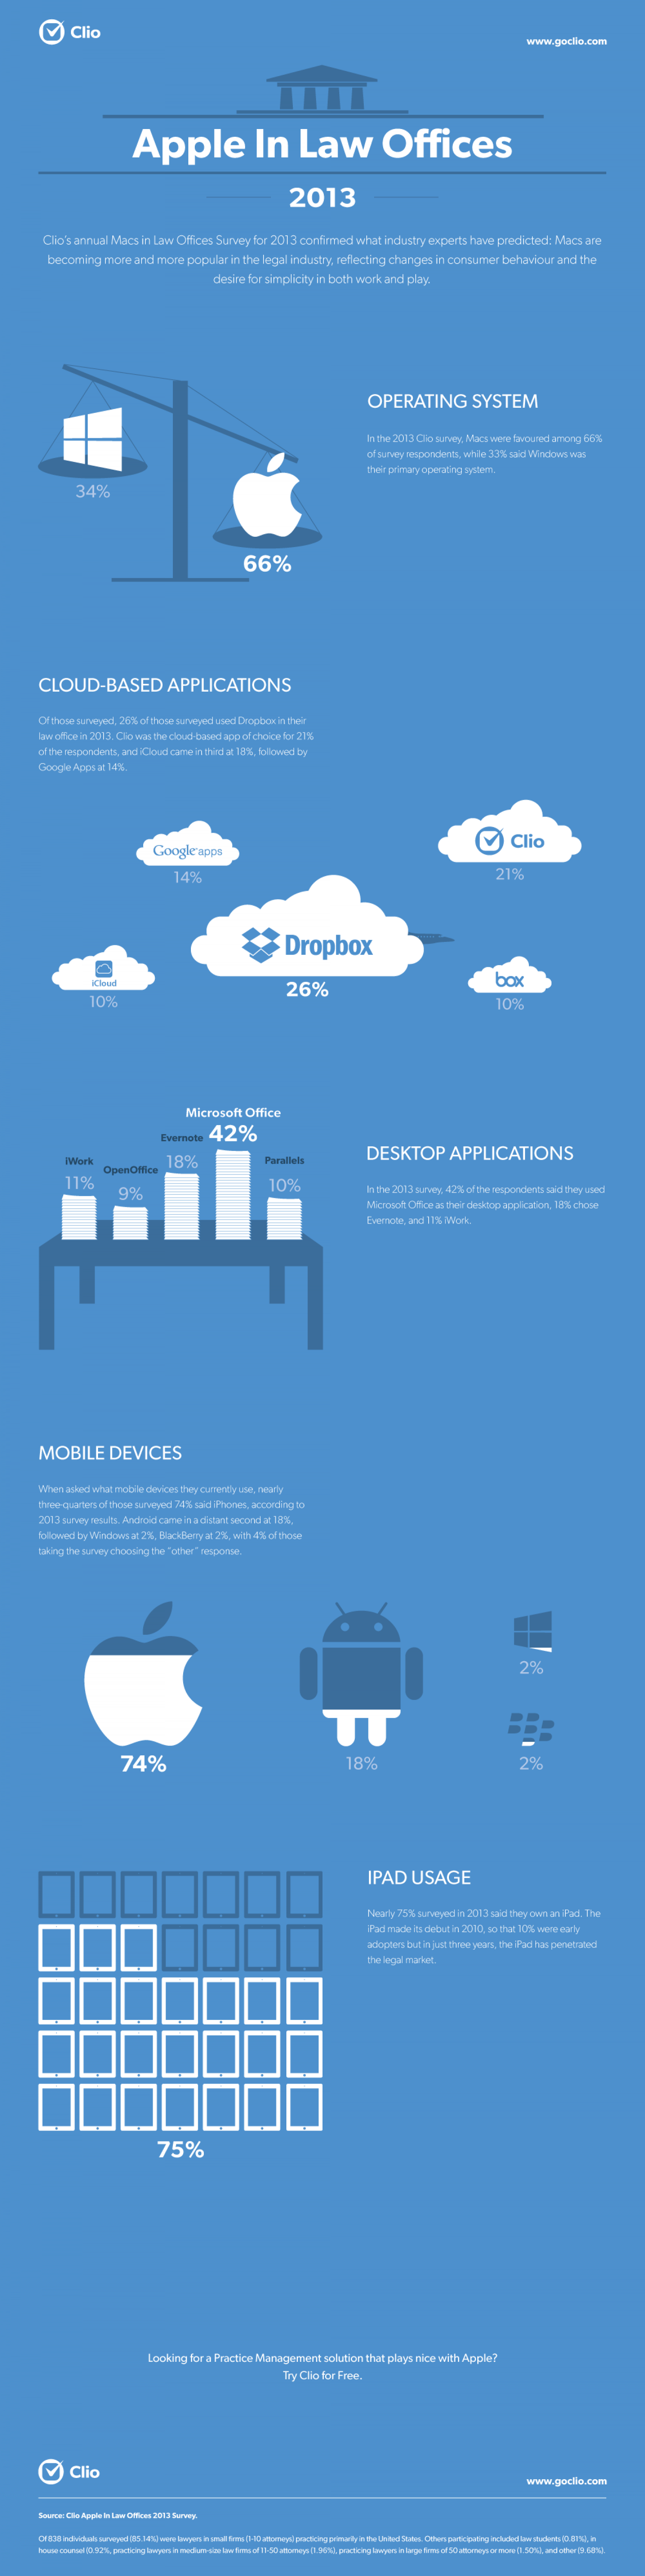 Apple In Law Offices 2013 Infographic